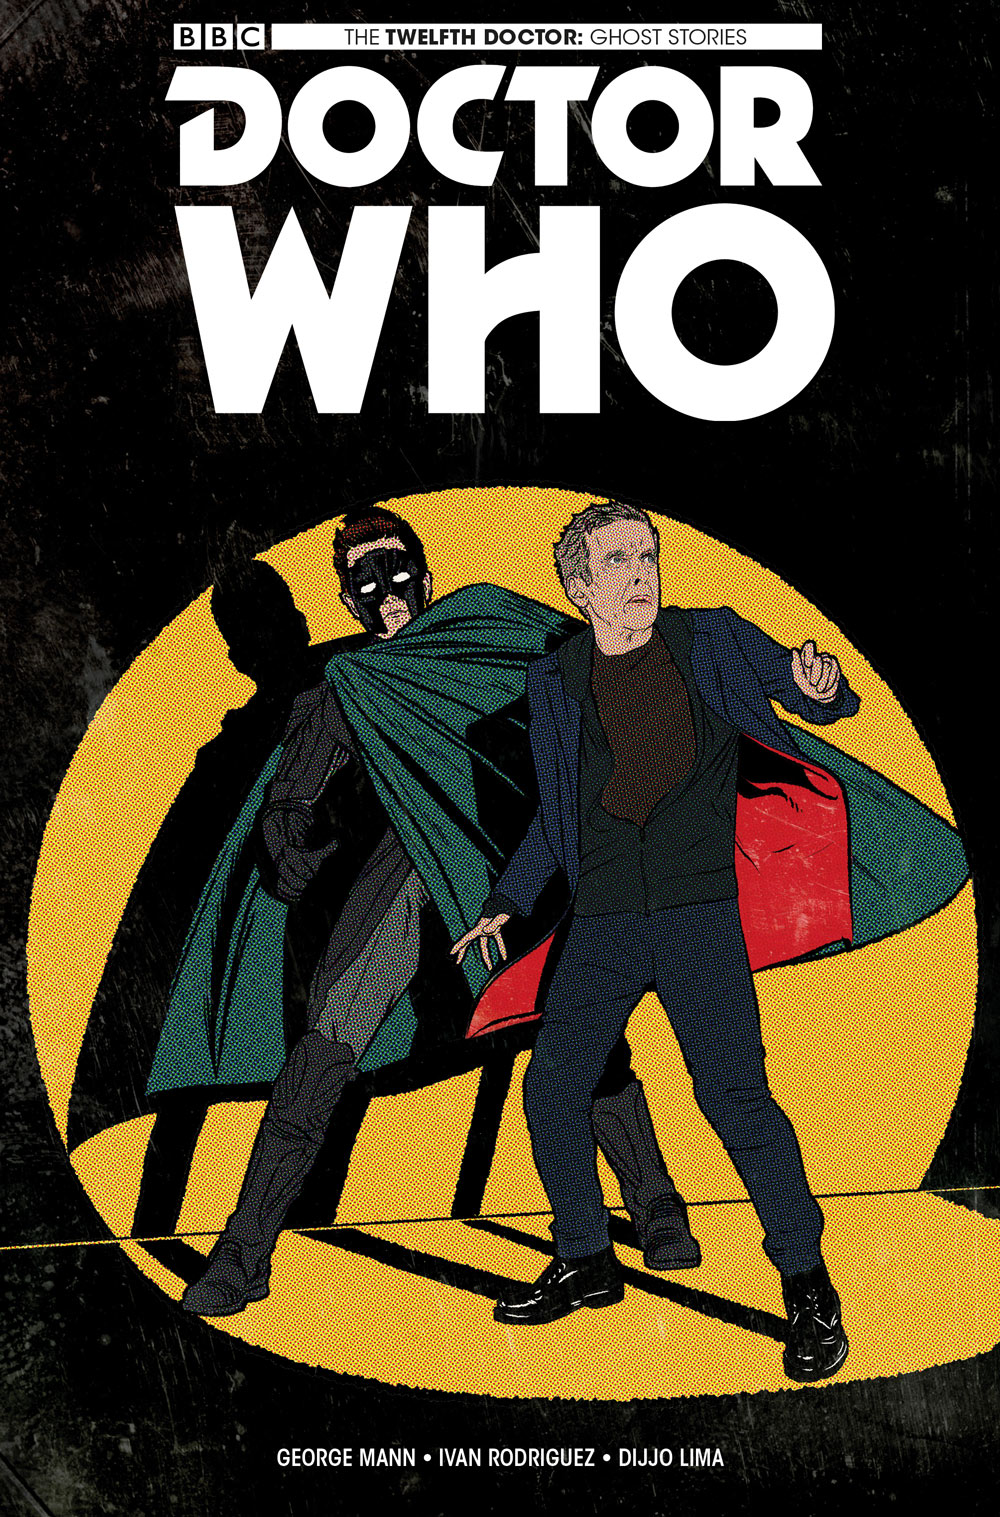 Titan April 2017 Solicitations Include Four #1s: Doctor Who